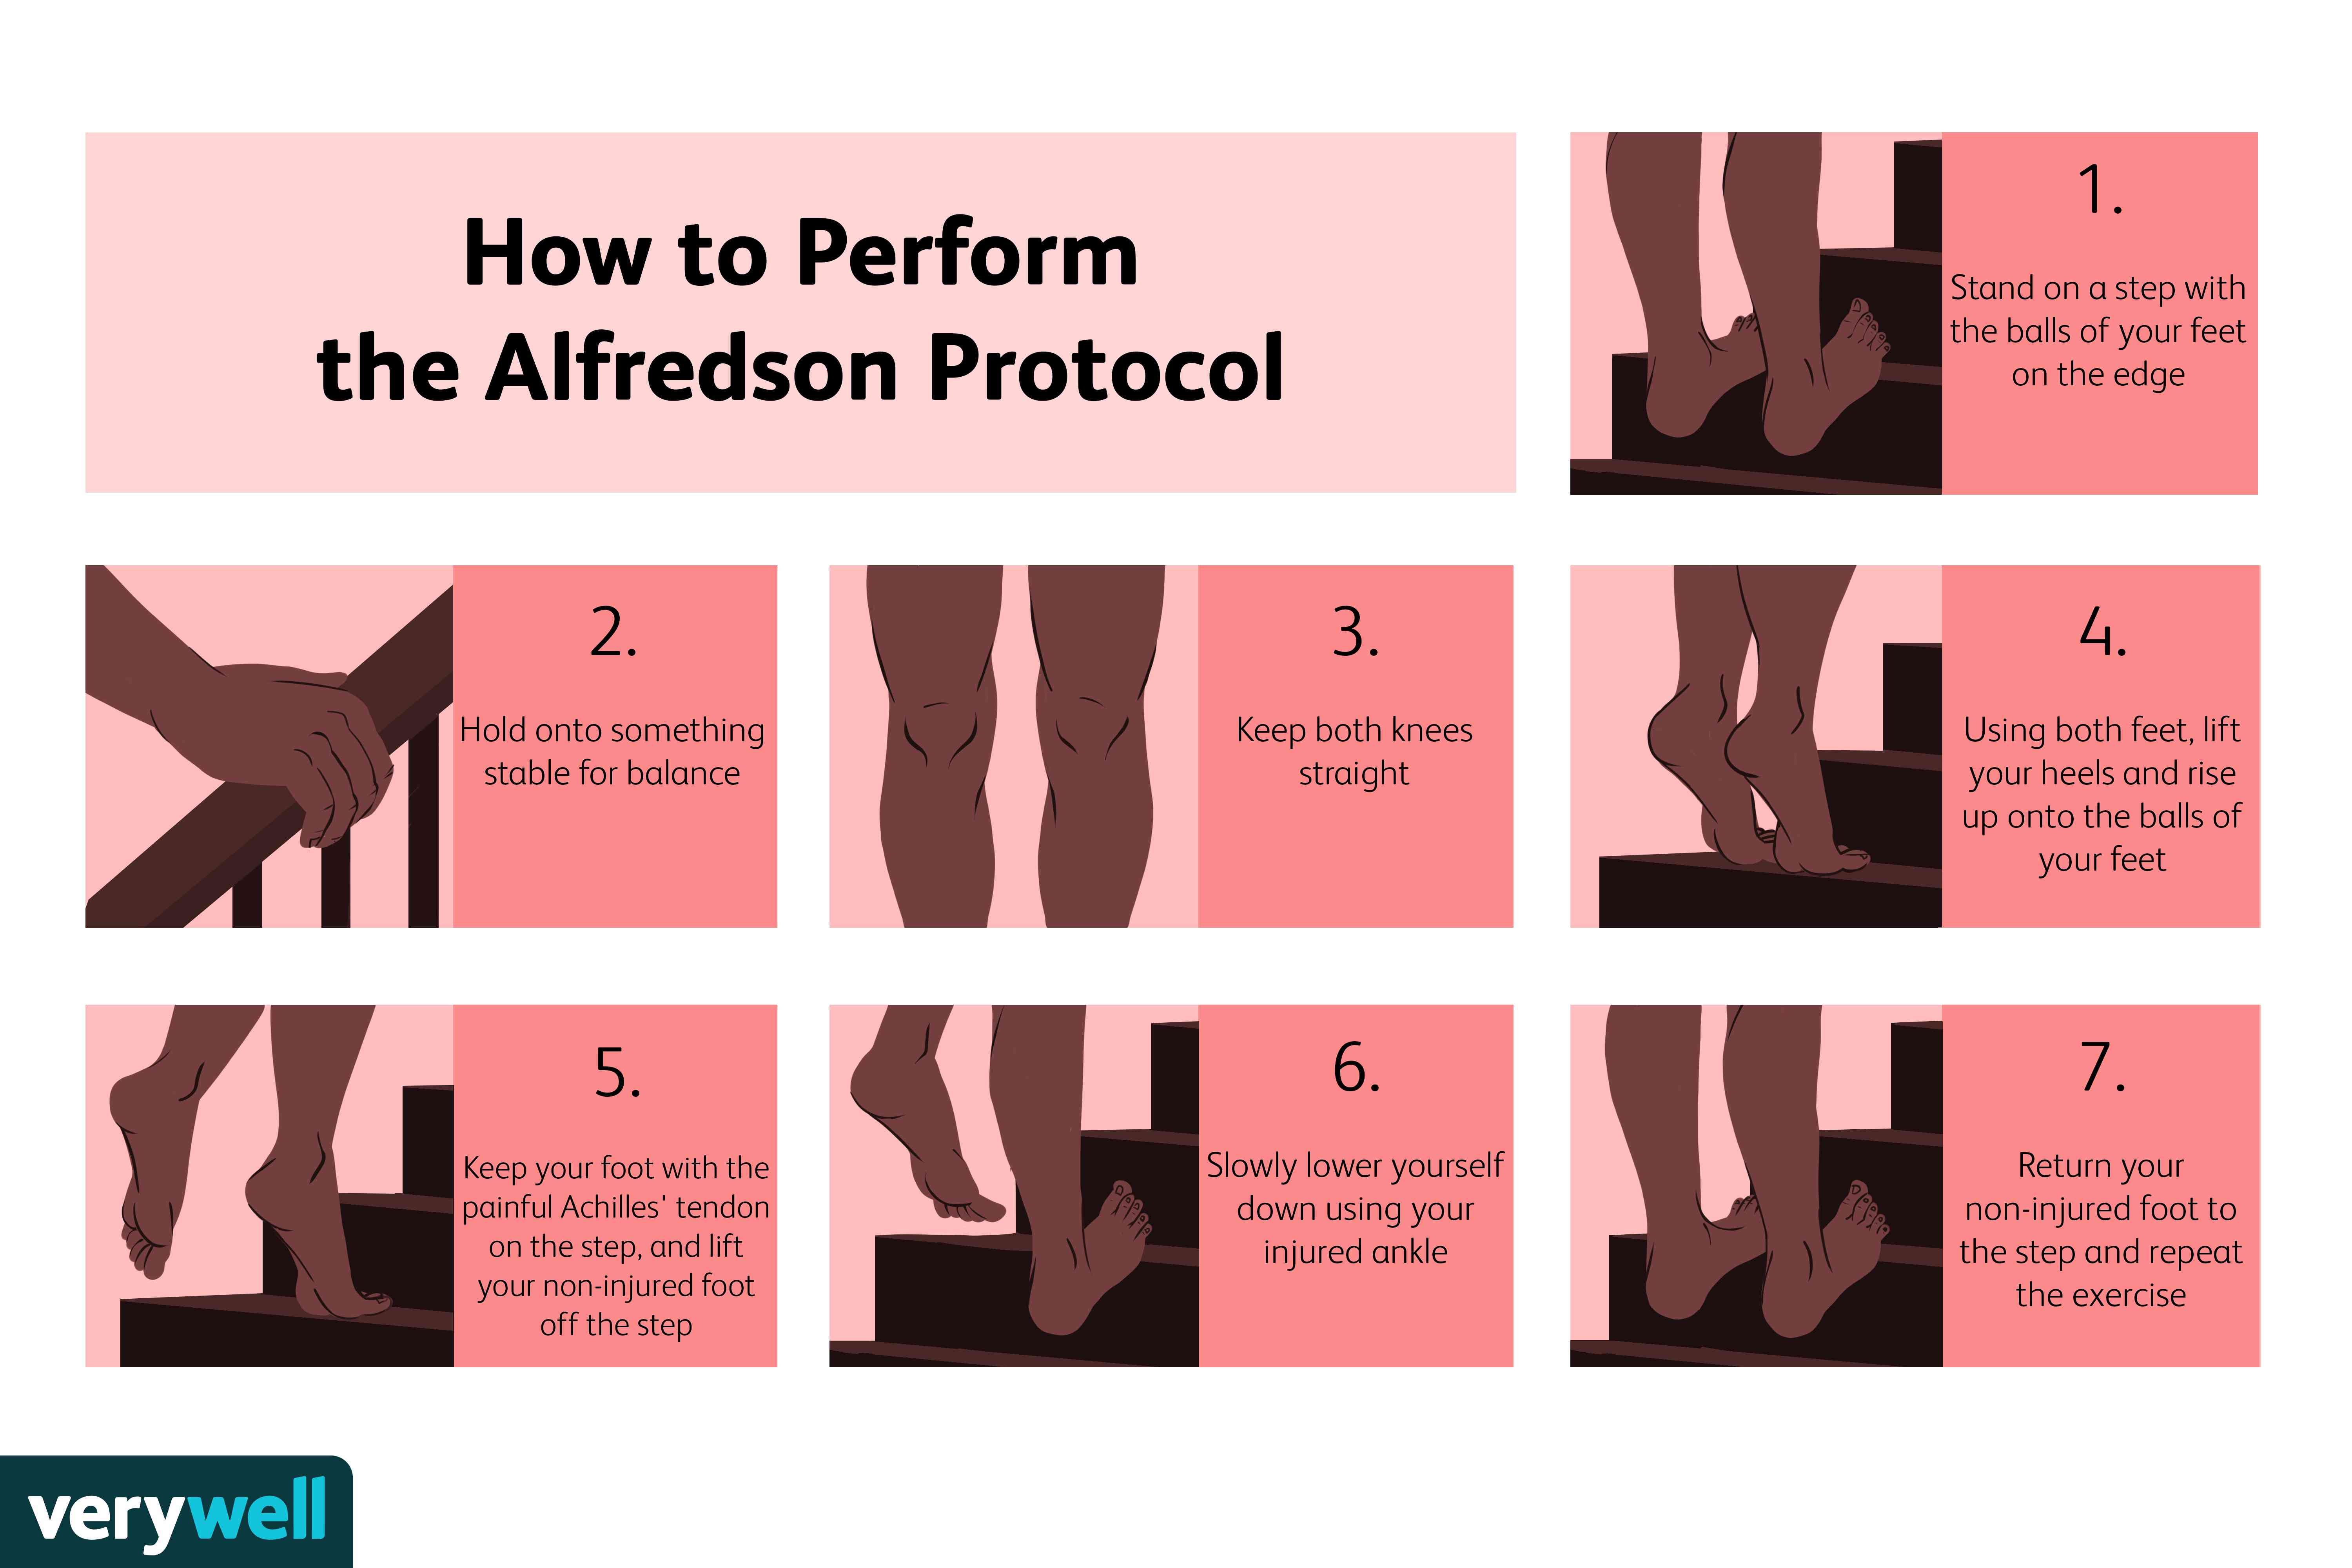 how to perform the alfredson protocol